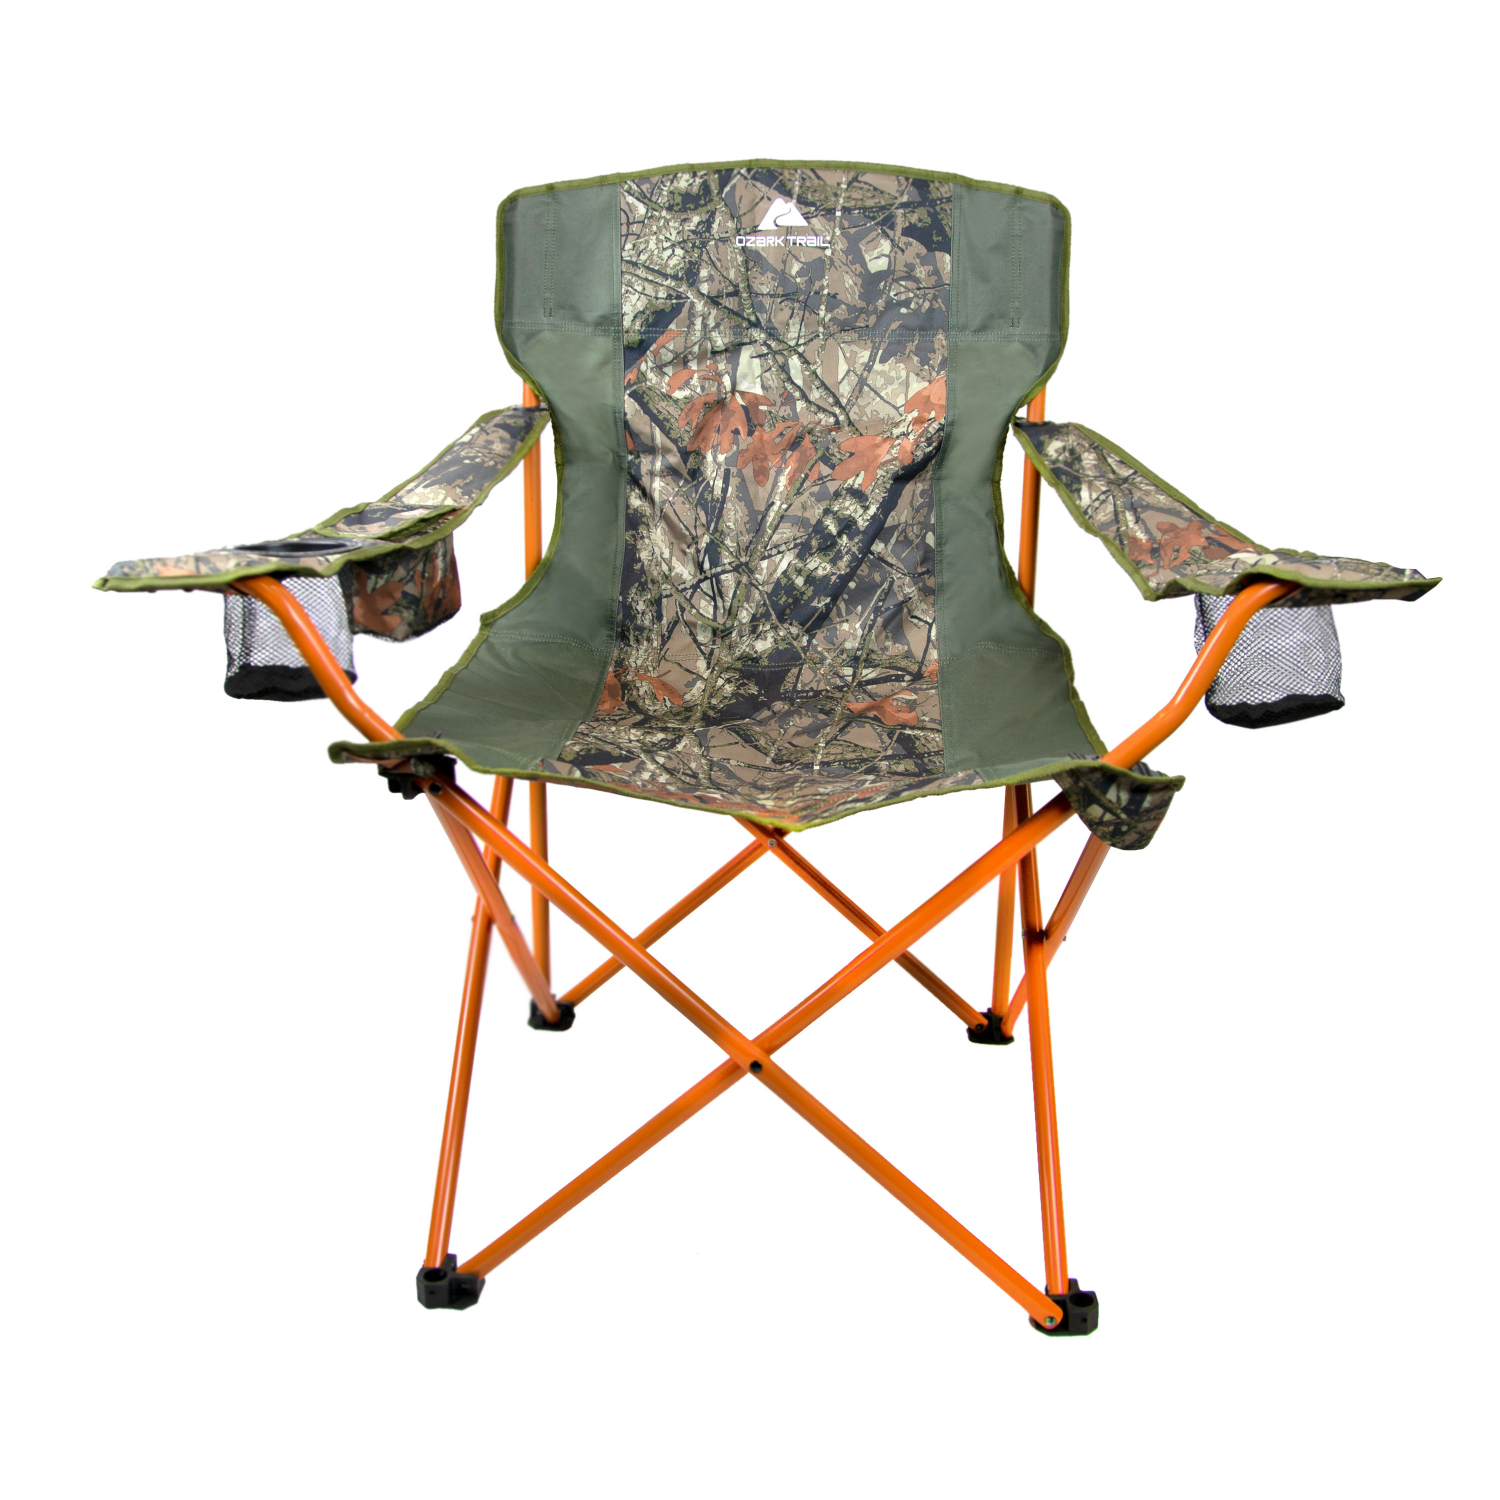 Enjoyable Details About Camouflage Ozark Trail Oversized Tailgate Quad Folding Camp Chair Pdpeps Interior Chair Design Pdpepsorg